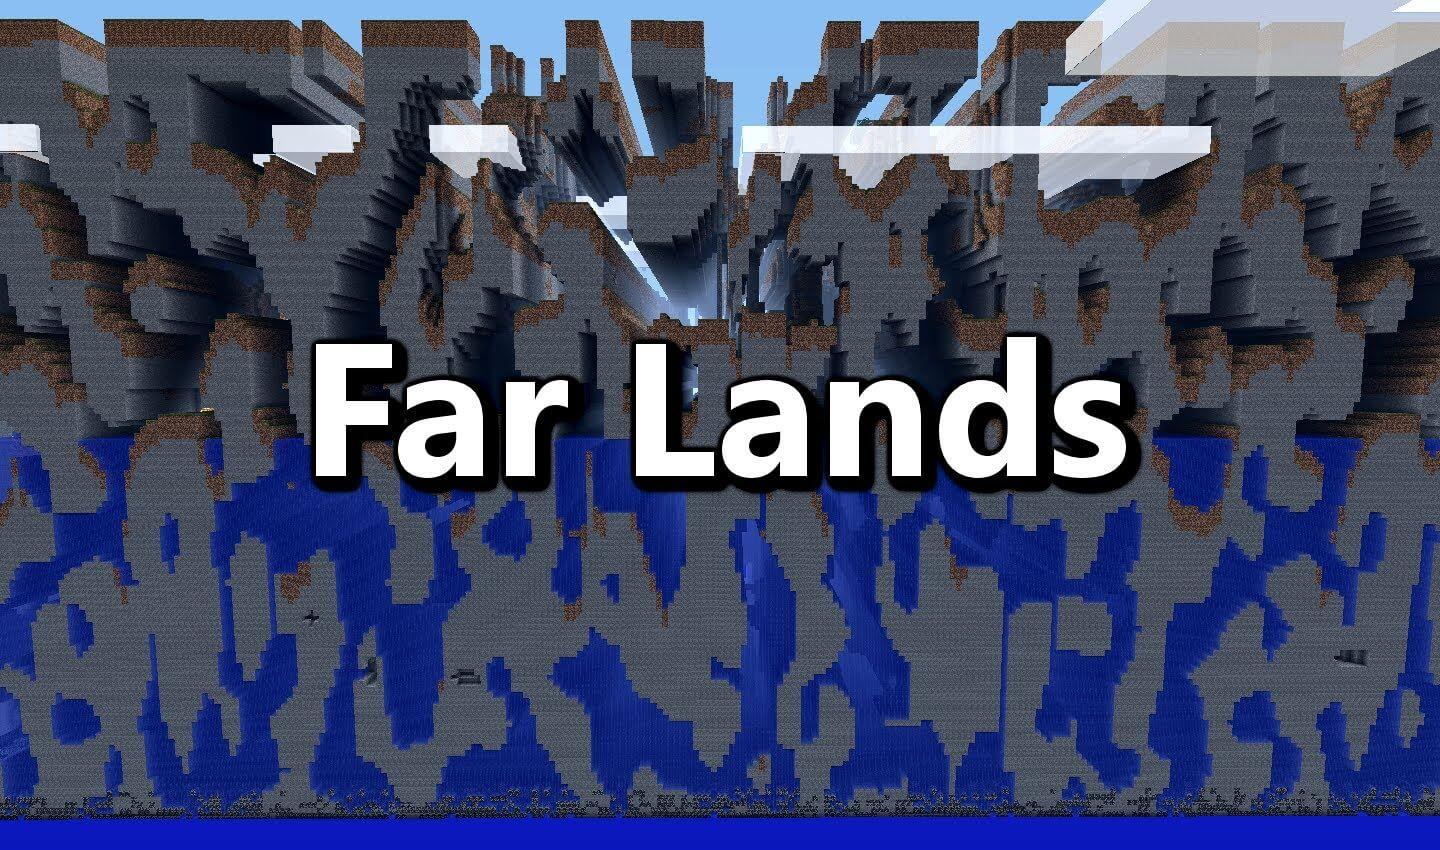 The Far Lands скриншот 1